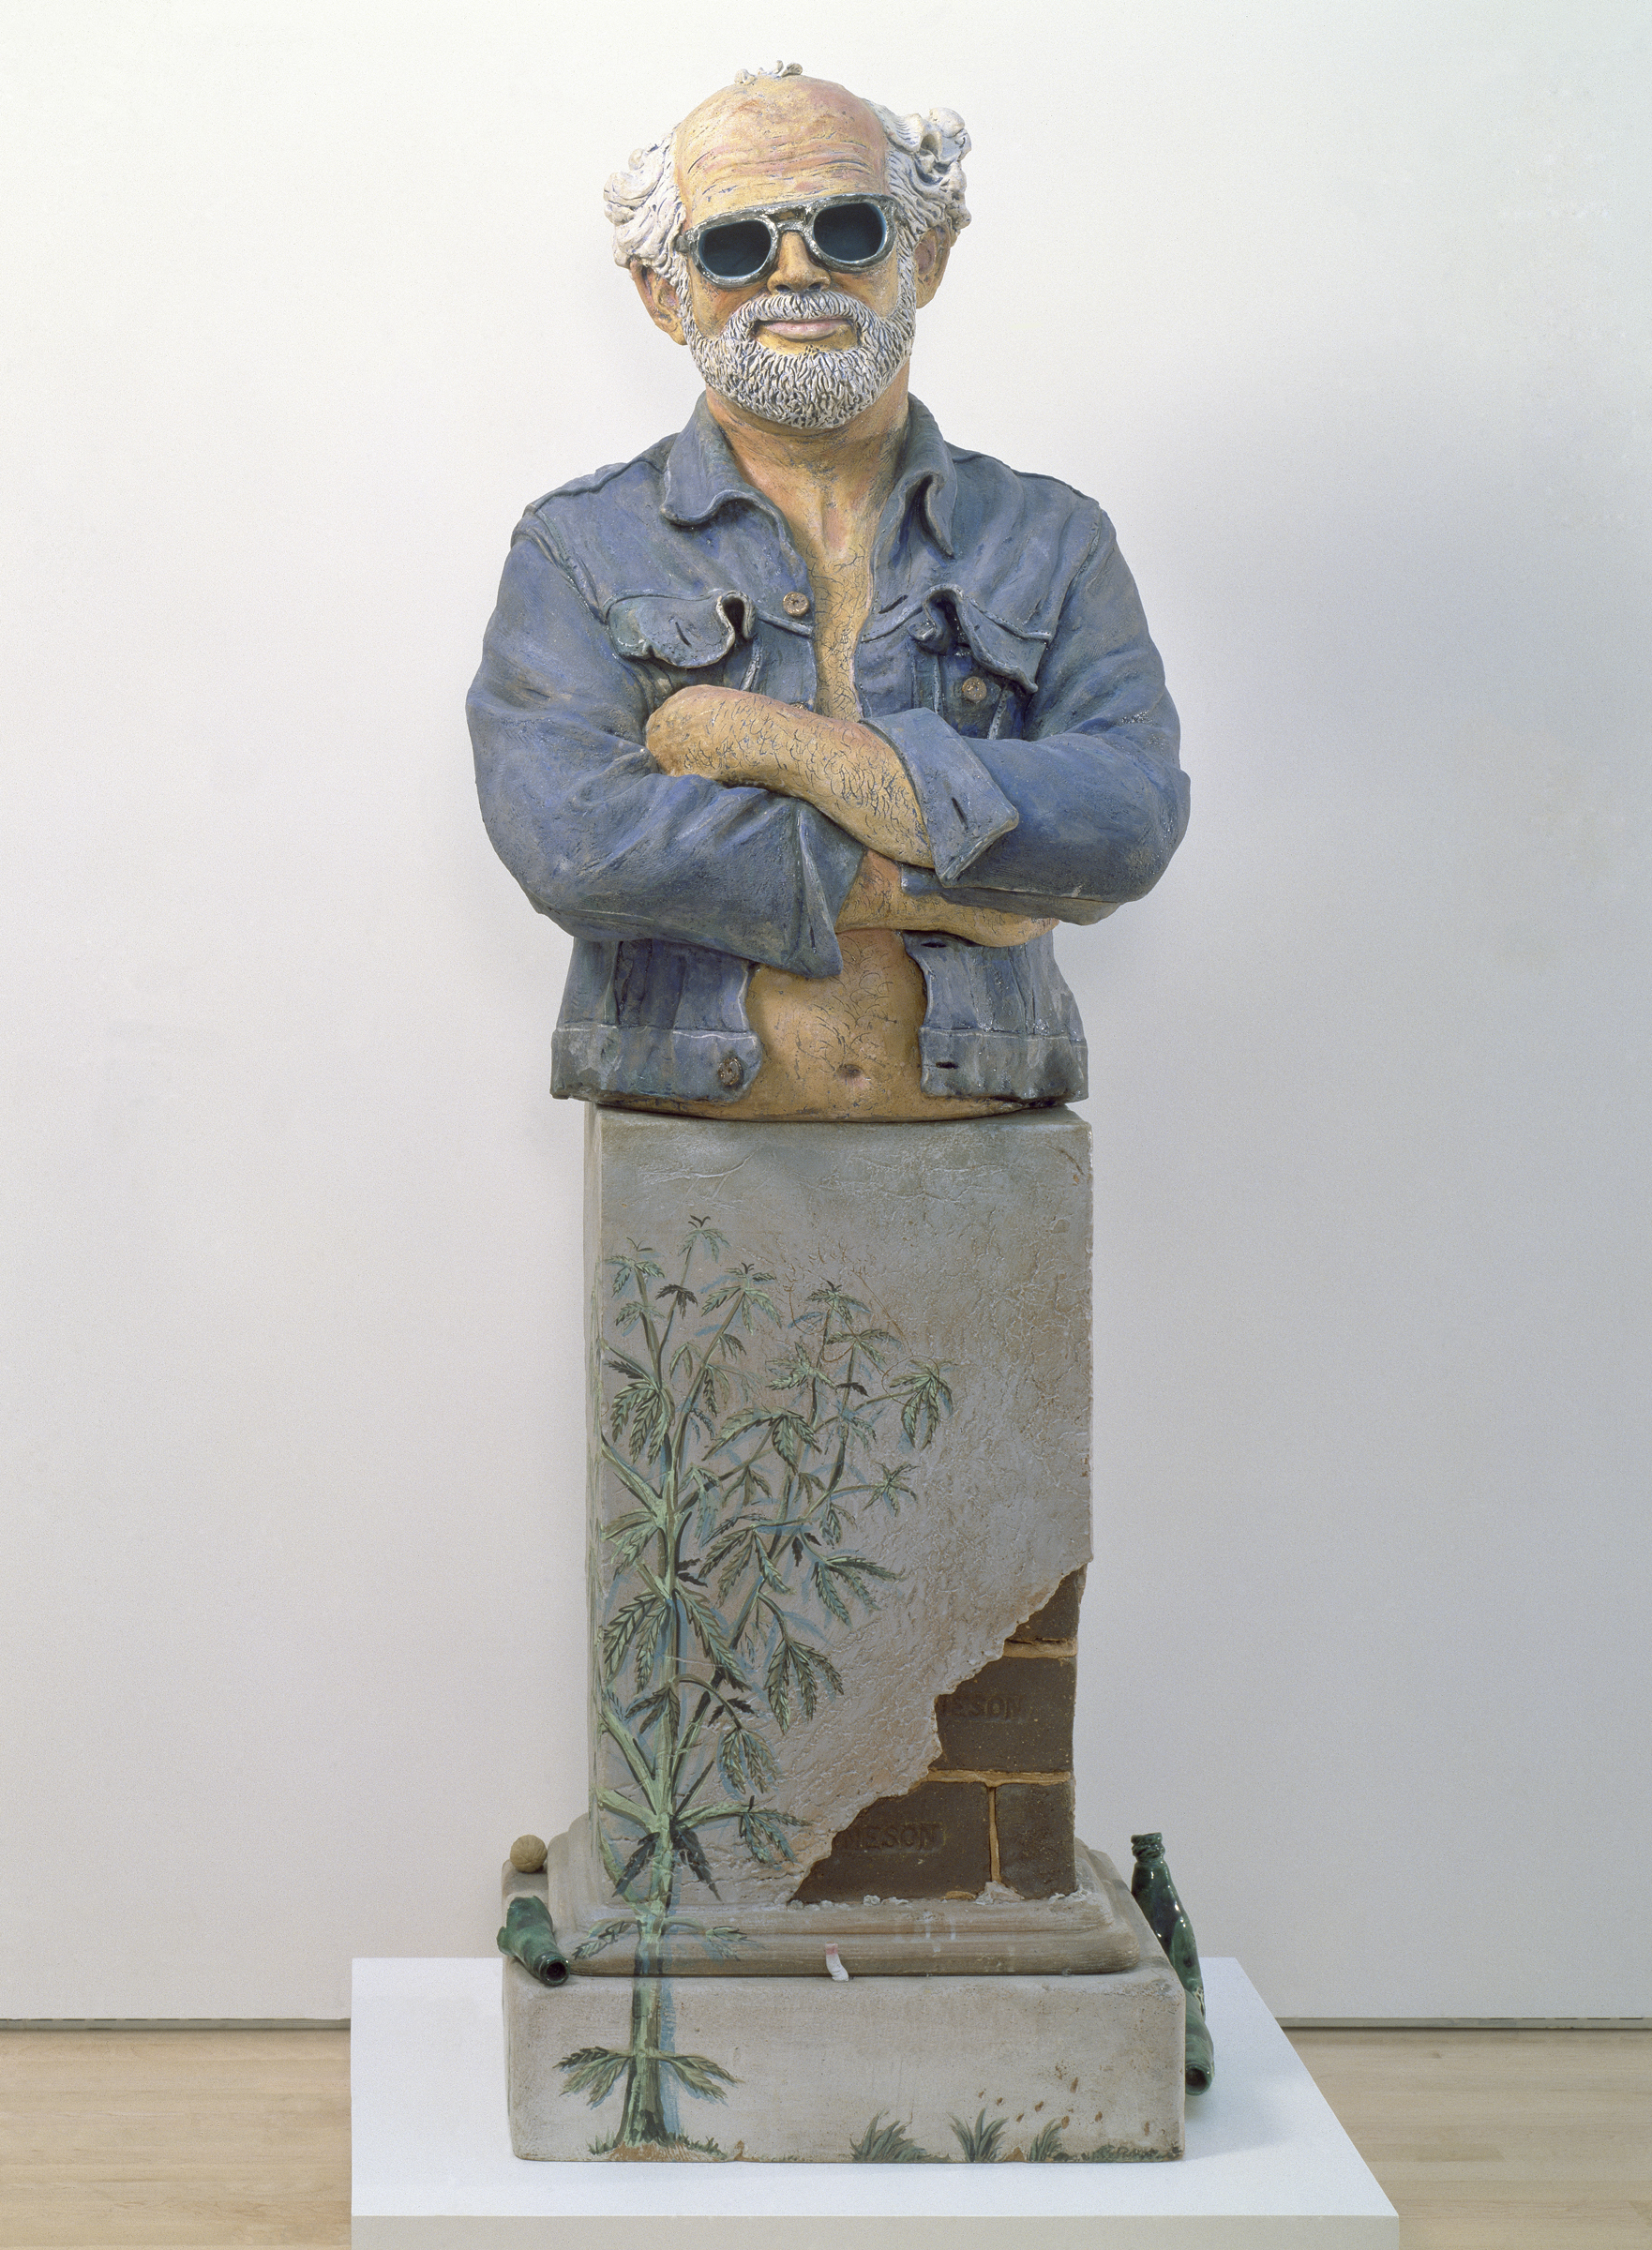 Robert Arneson, <i>California Artist</i>, 1982; stoneware with glazes; 68 1/4 in. x 27 1/2 in. x 20 1/4 in. Courtesy of San Francisco Museum of Modern Art. © Estate of Robert Arneson